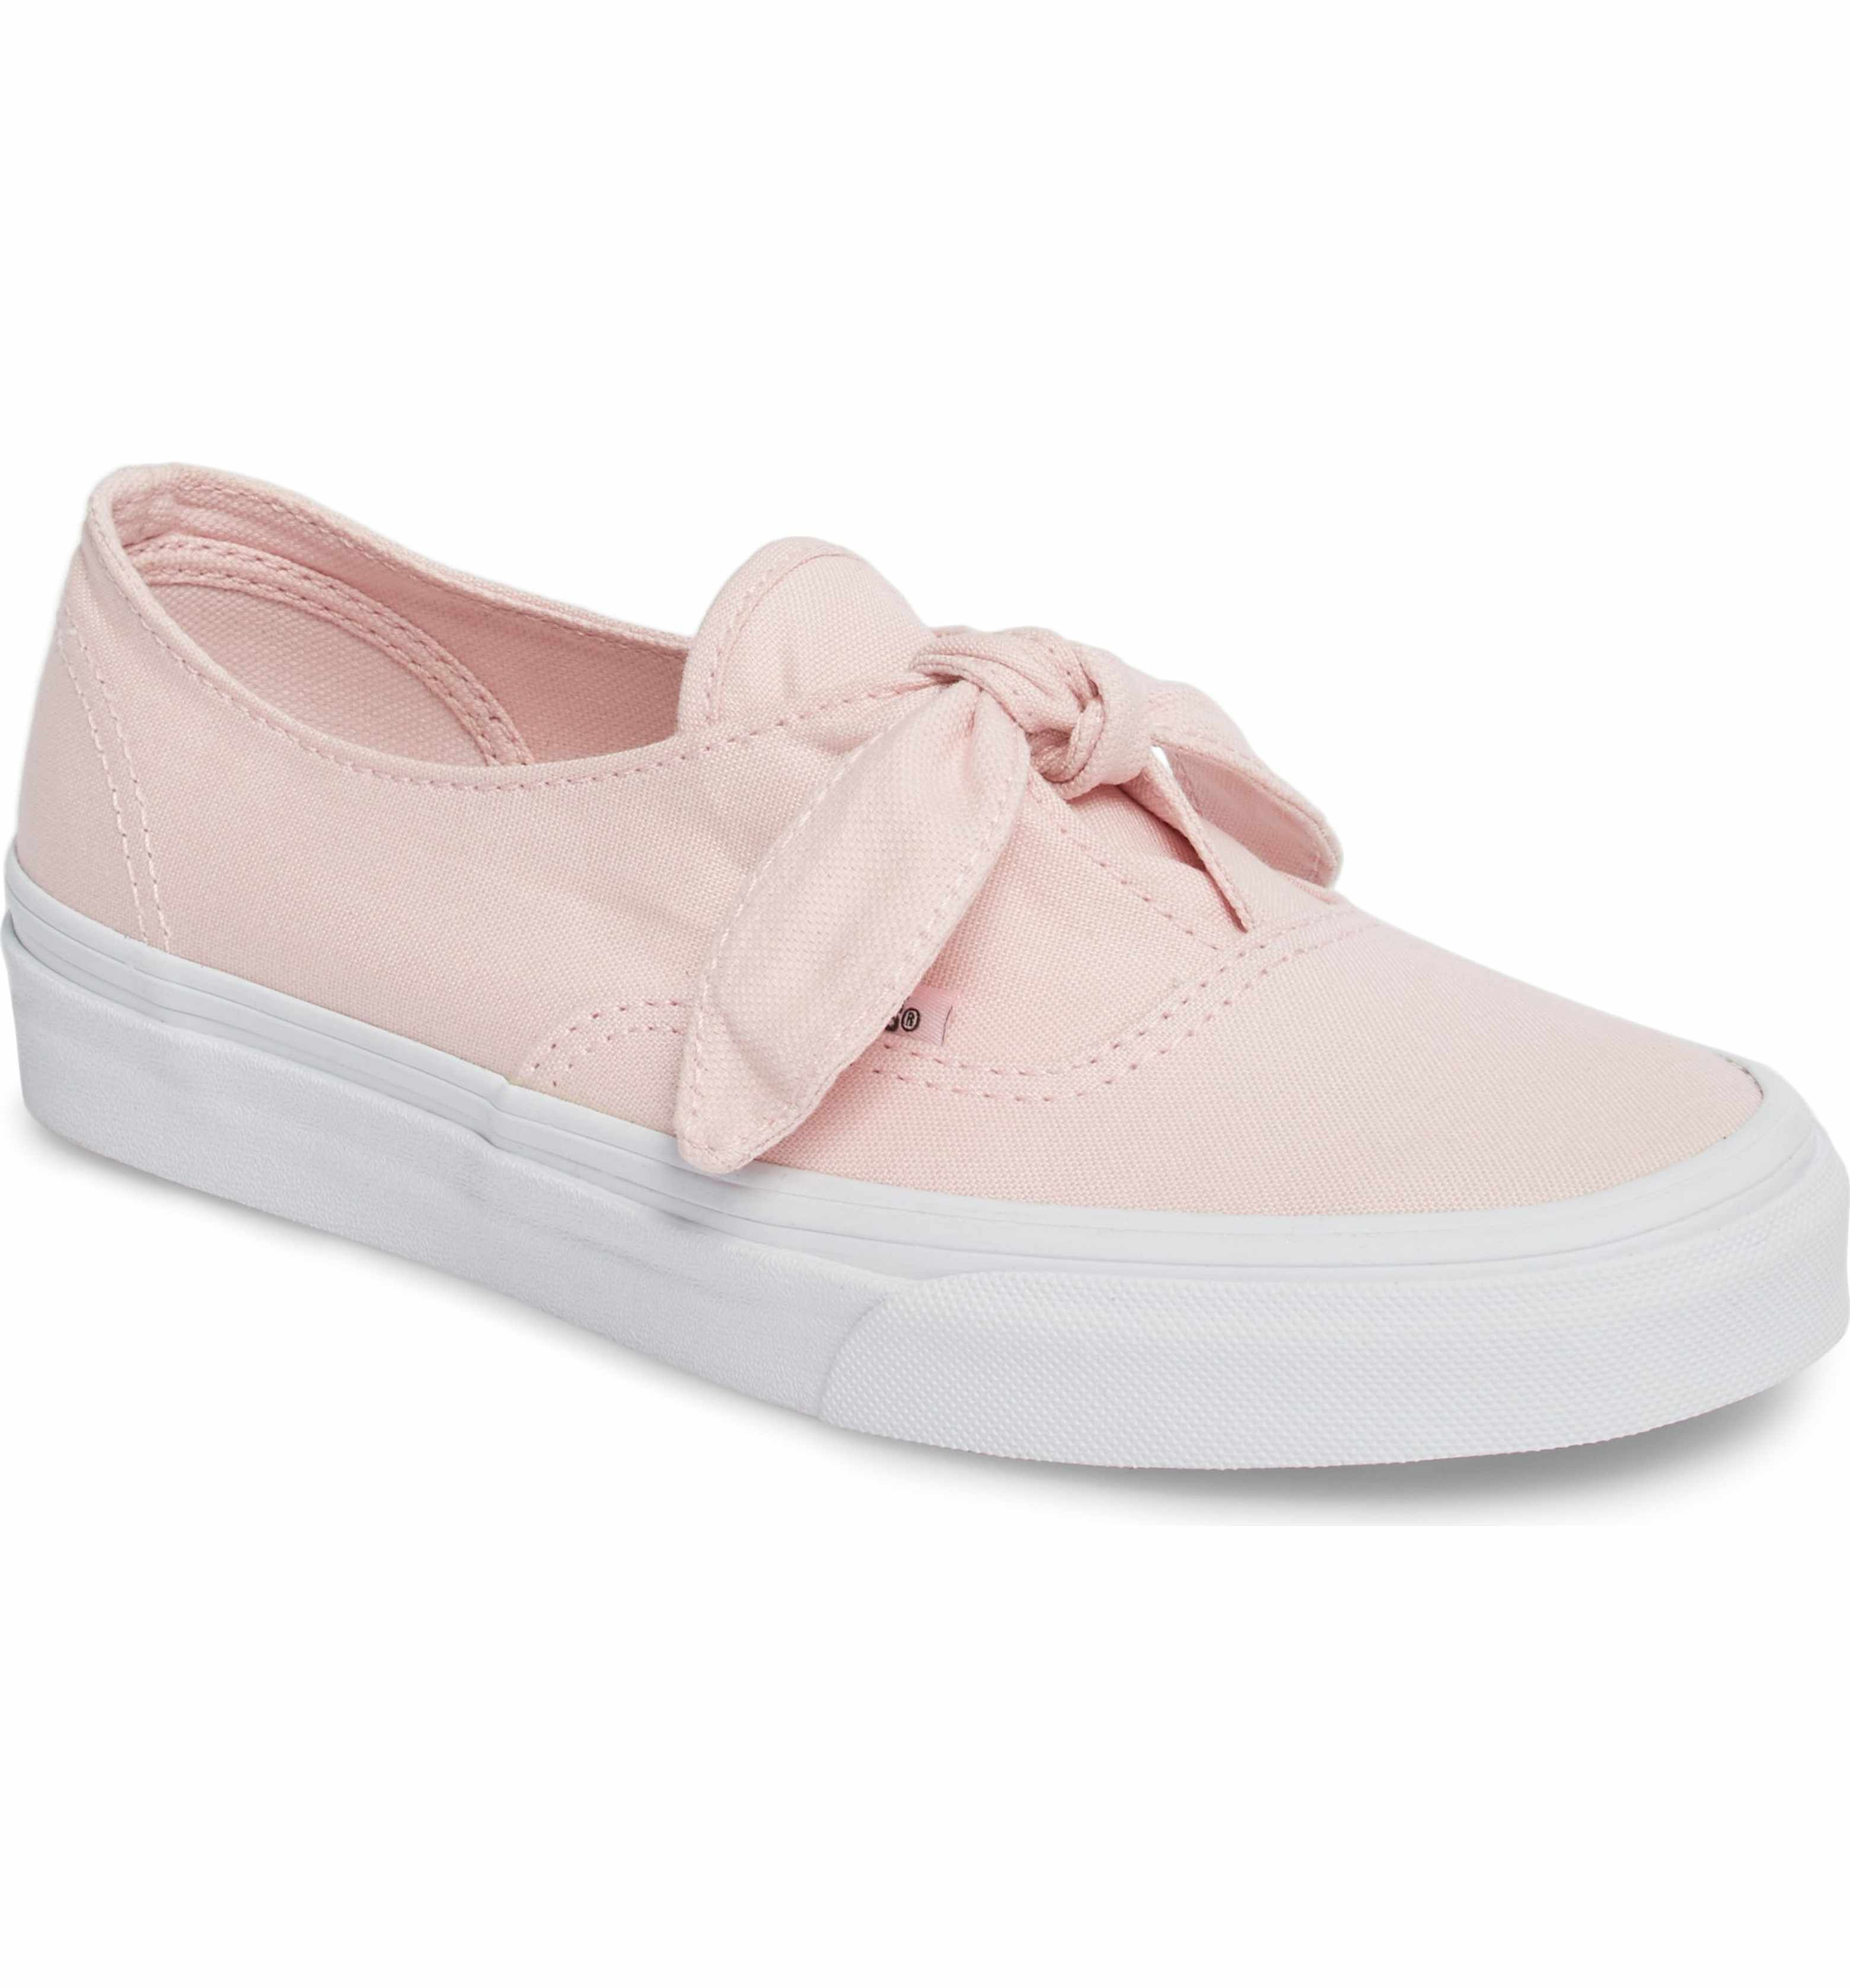 Knotted Slip On Shoes Outlet Shop, UP TO 69% OFF